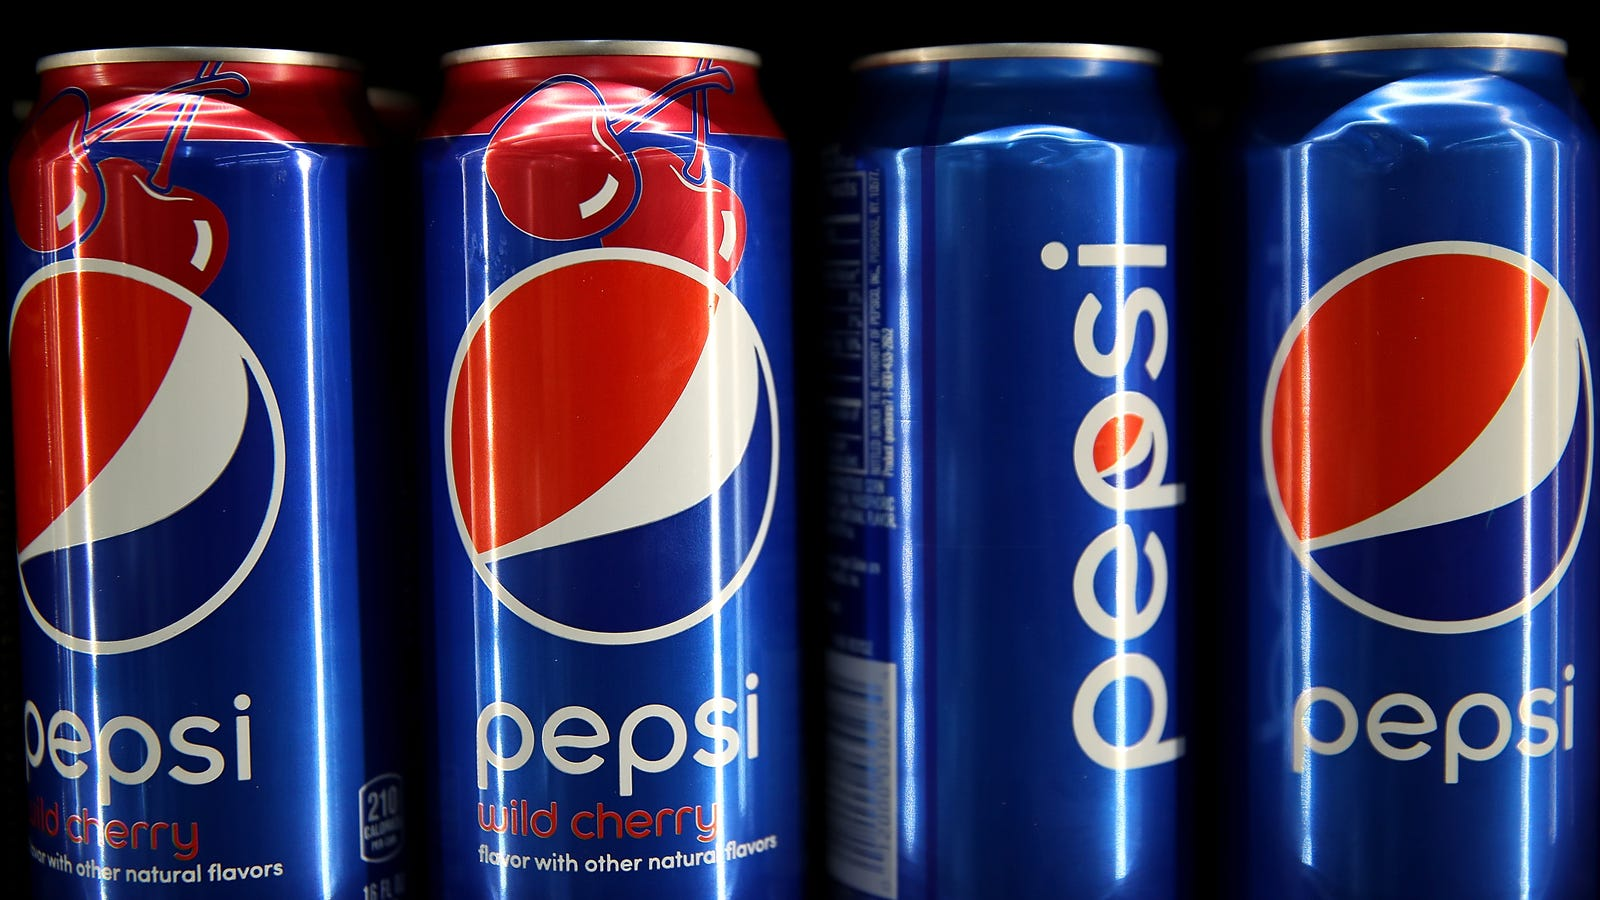 PepsiCo Layoffs News Monitoring Service & Press Release